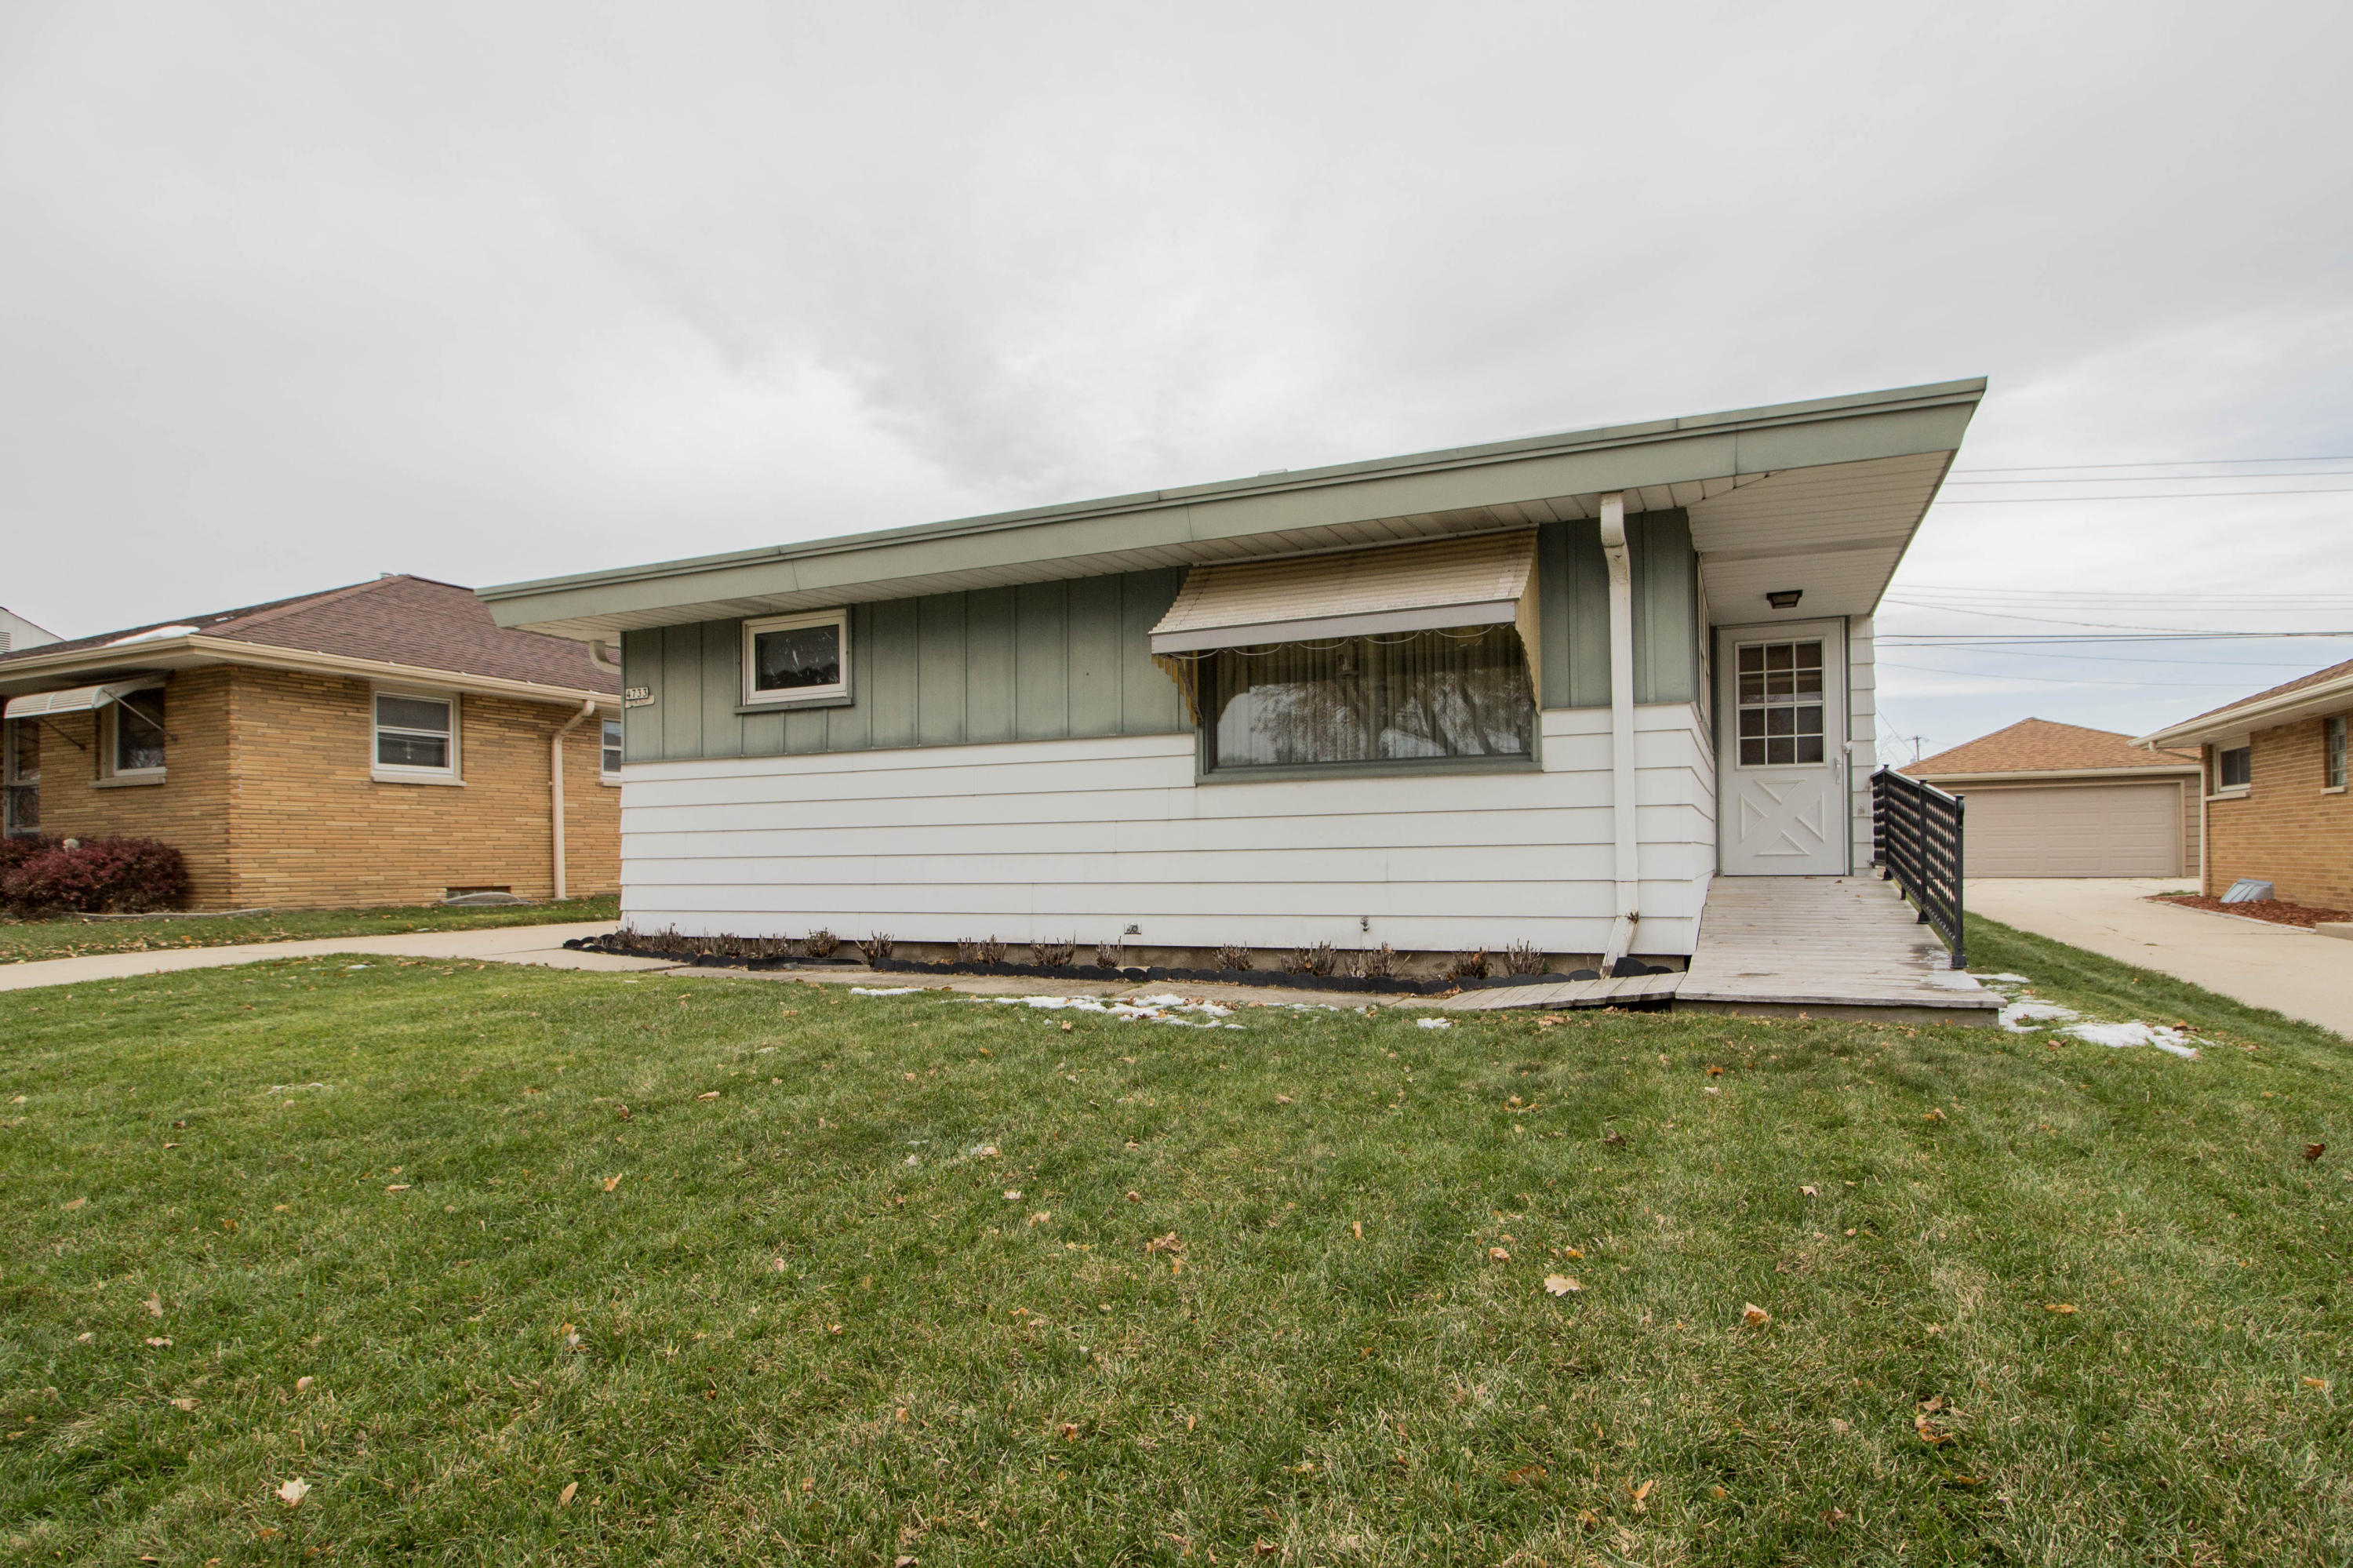 4733 25th St, Milwaukee, Wisconsin 53221, 3 Bedrooms Bedrooms, 5 Rooms Rooms,2 BathroomsBathrooms,Single-Family,For Sale,25th St,1614573